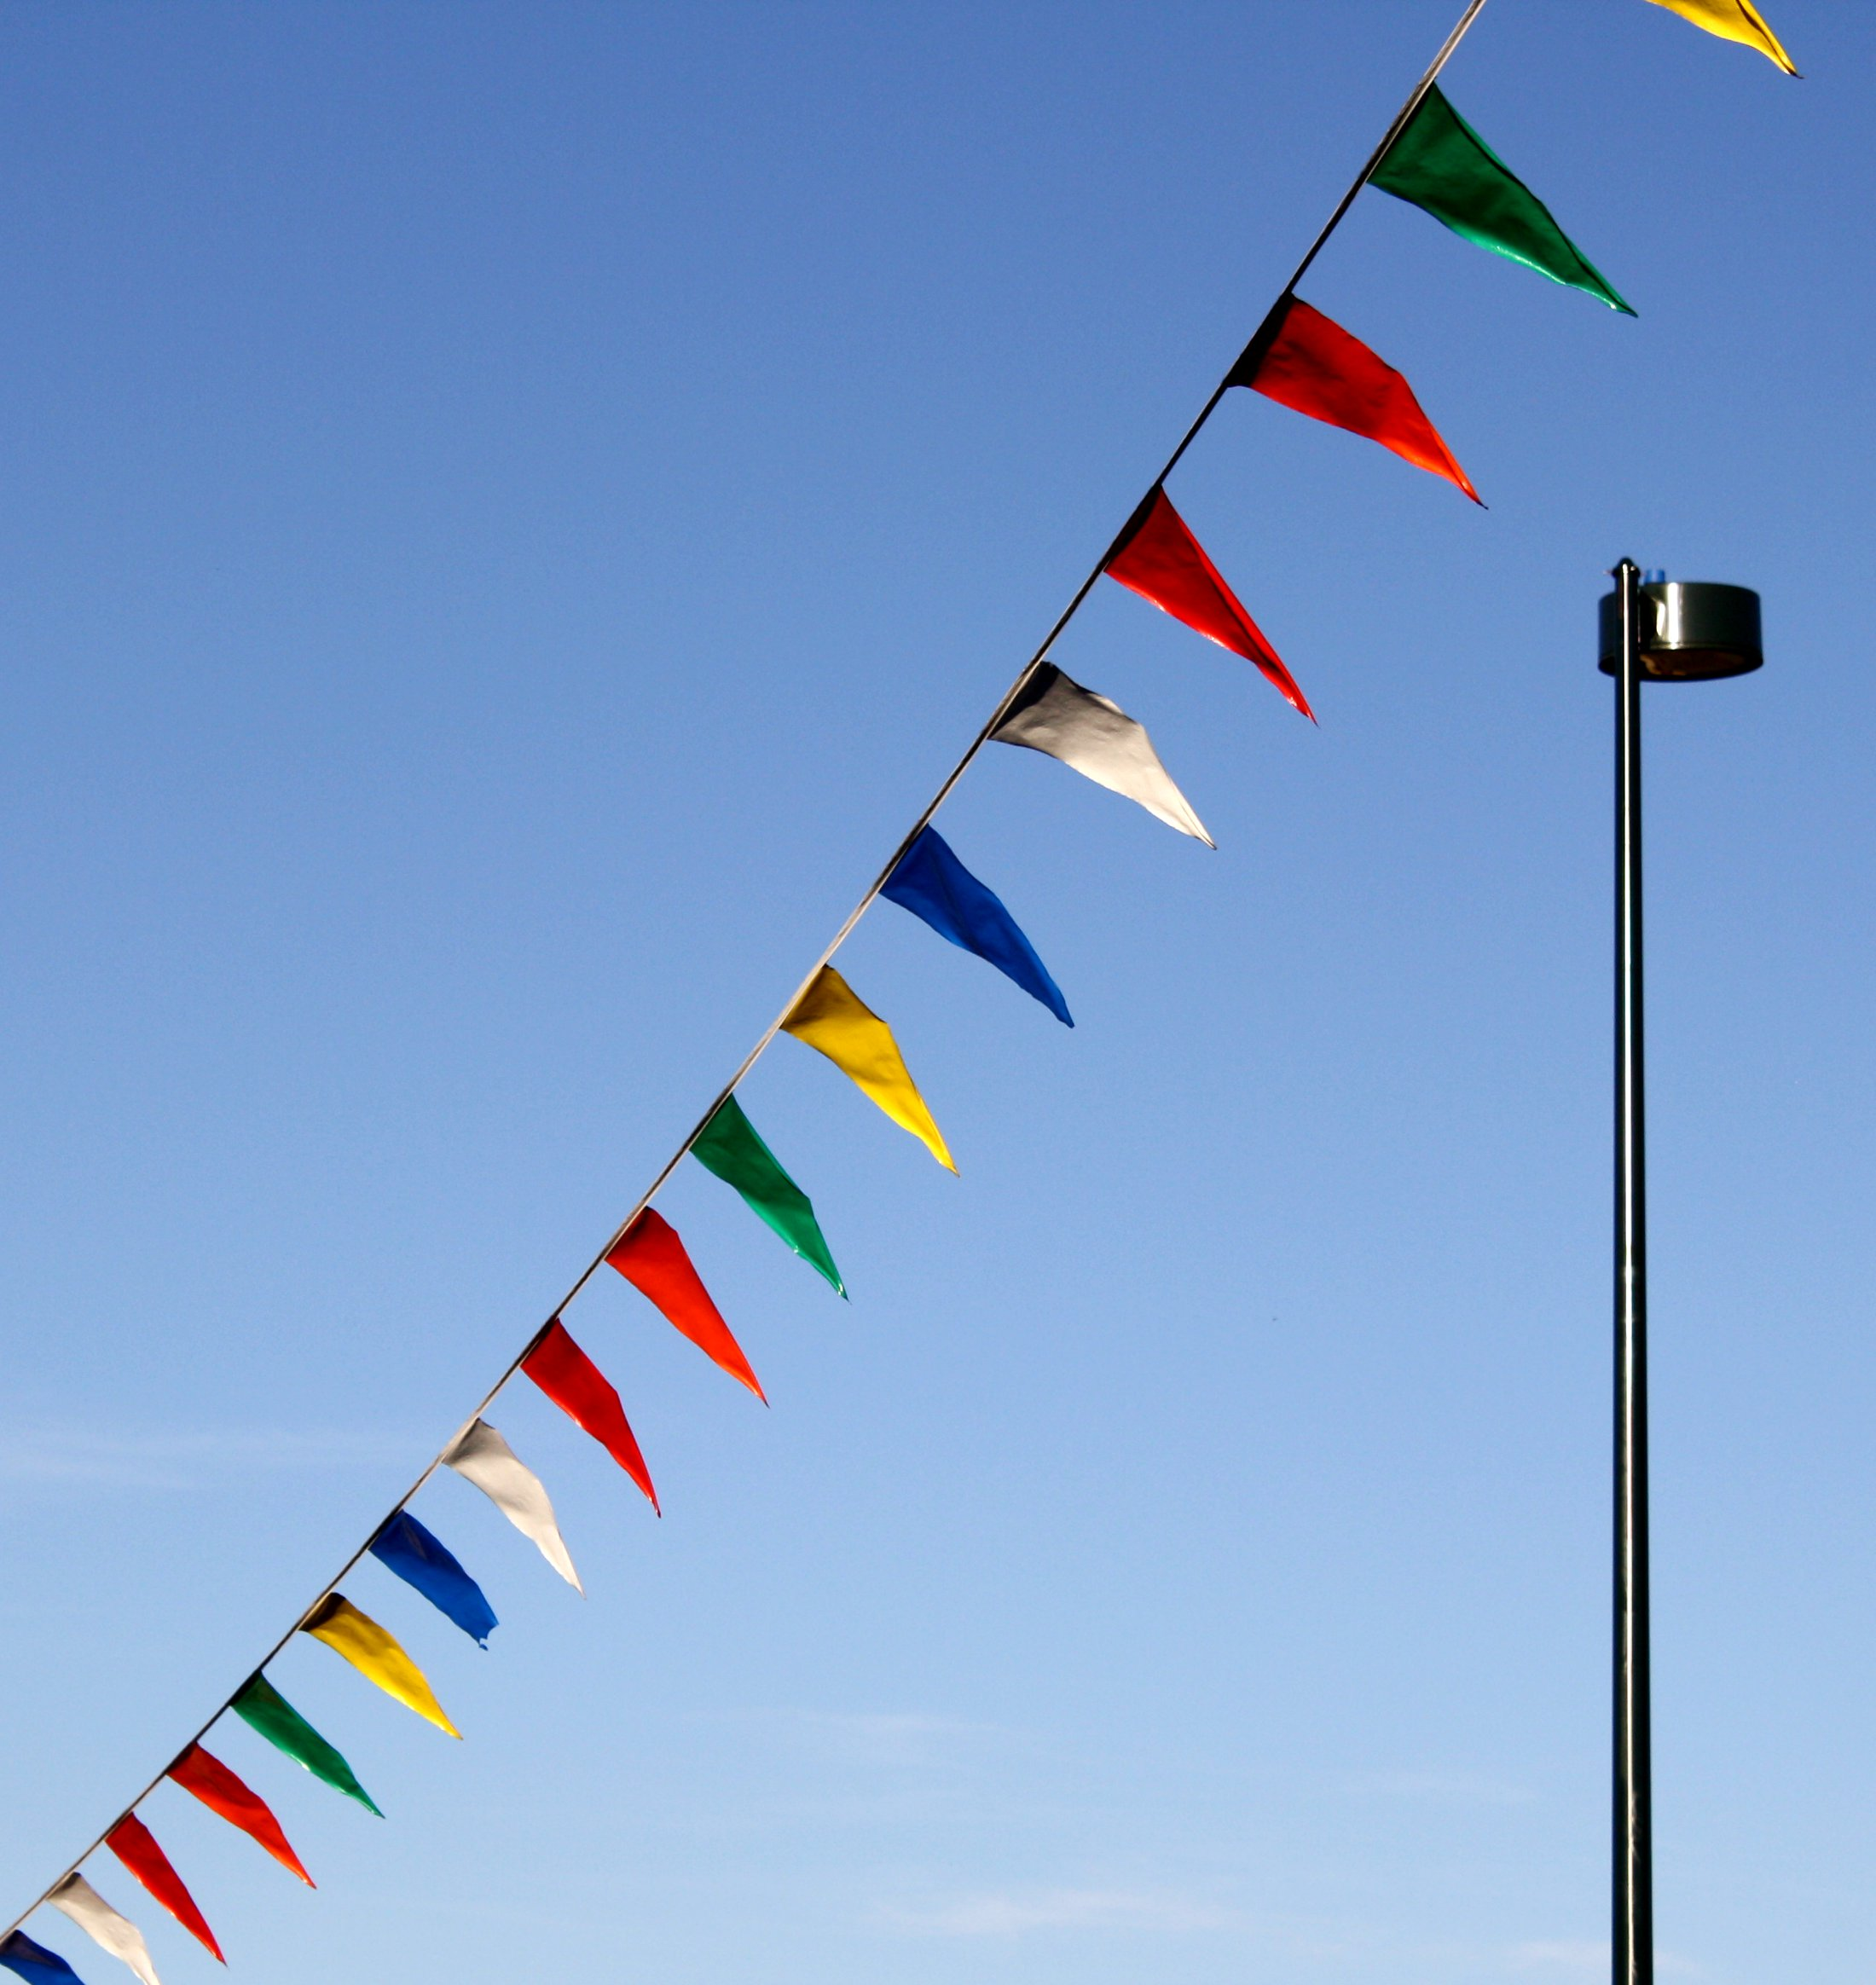 Street Lamp and Pennant Flags Picture | Free Photograph | Photos ...